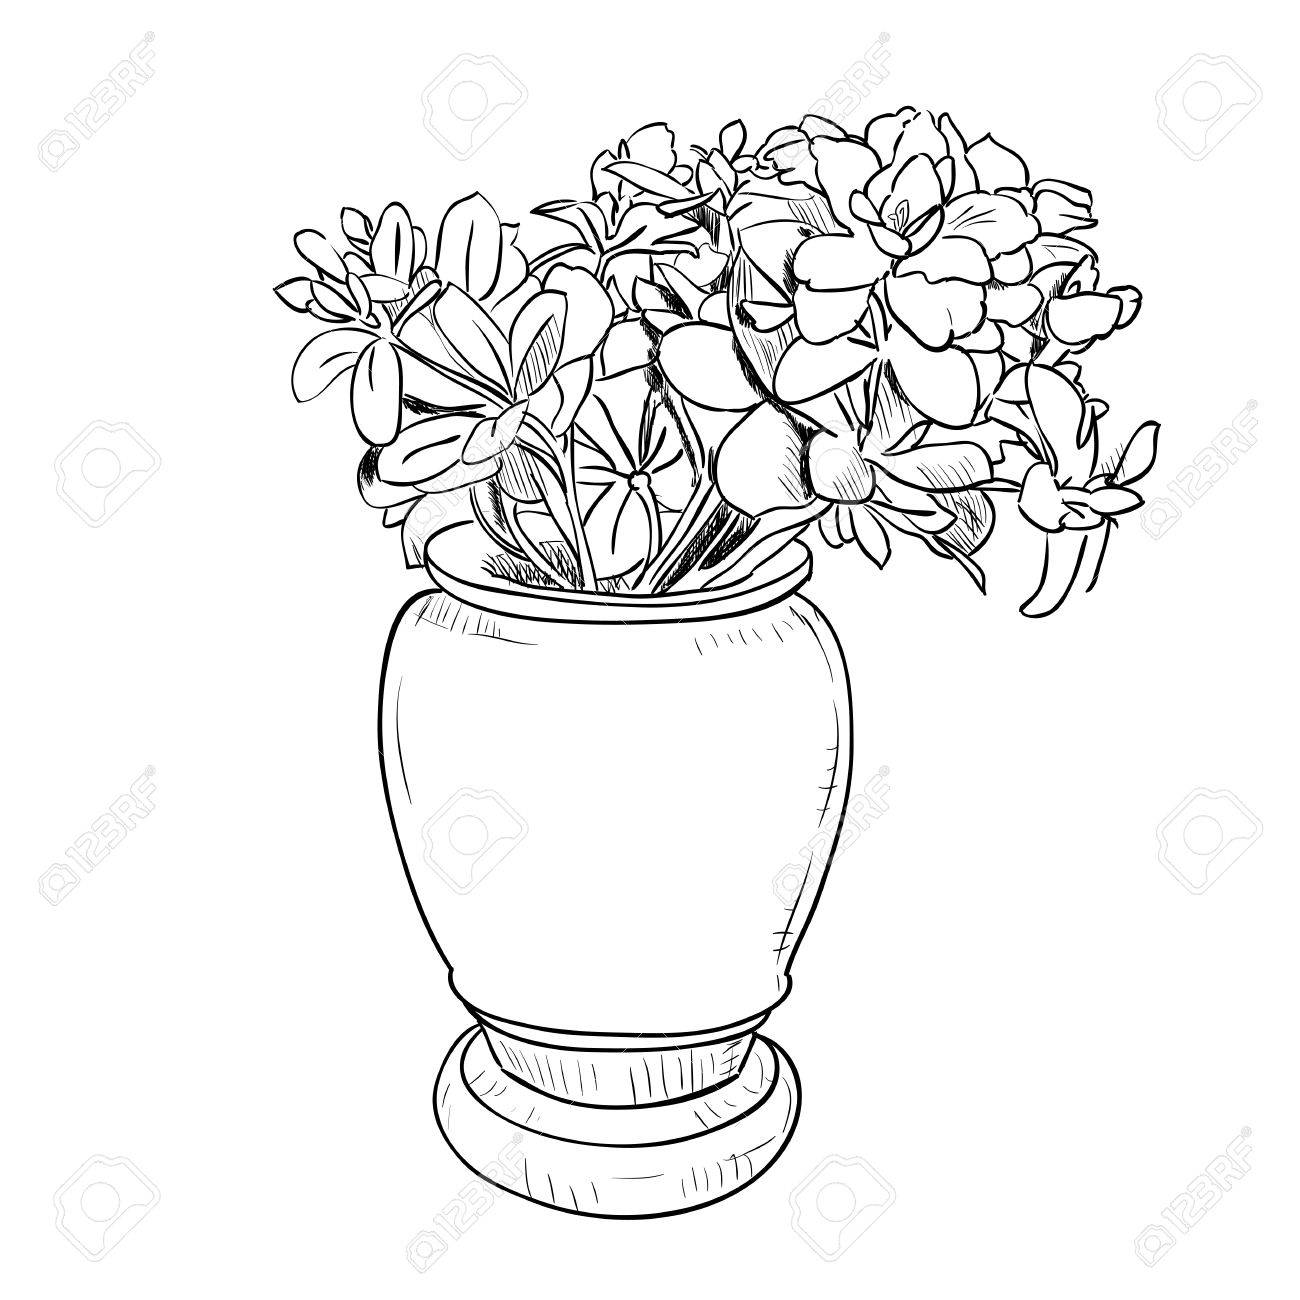 1300x1300 Vector Drawing Sketch Of Vase With Flowers. Hand Draw Illustration